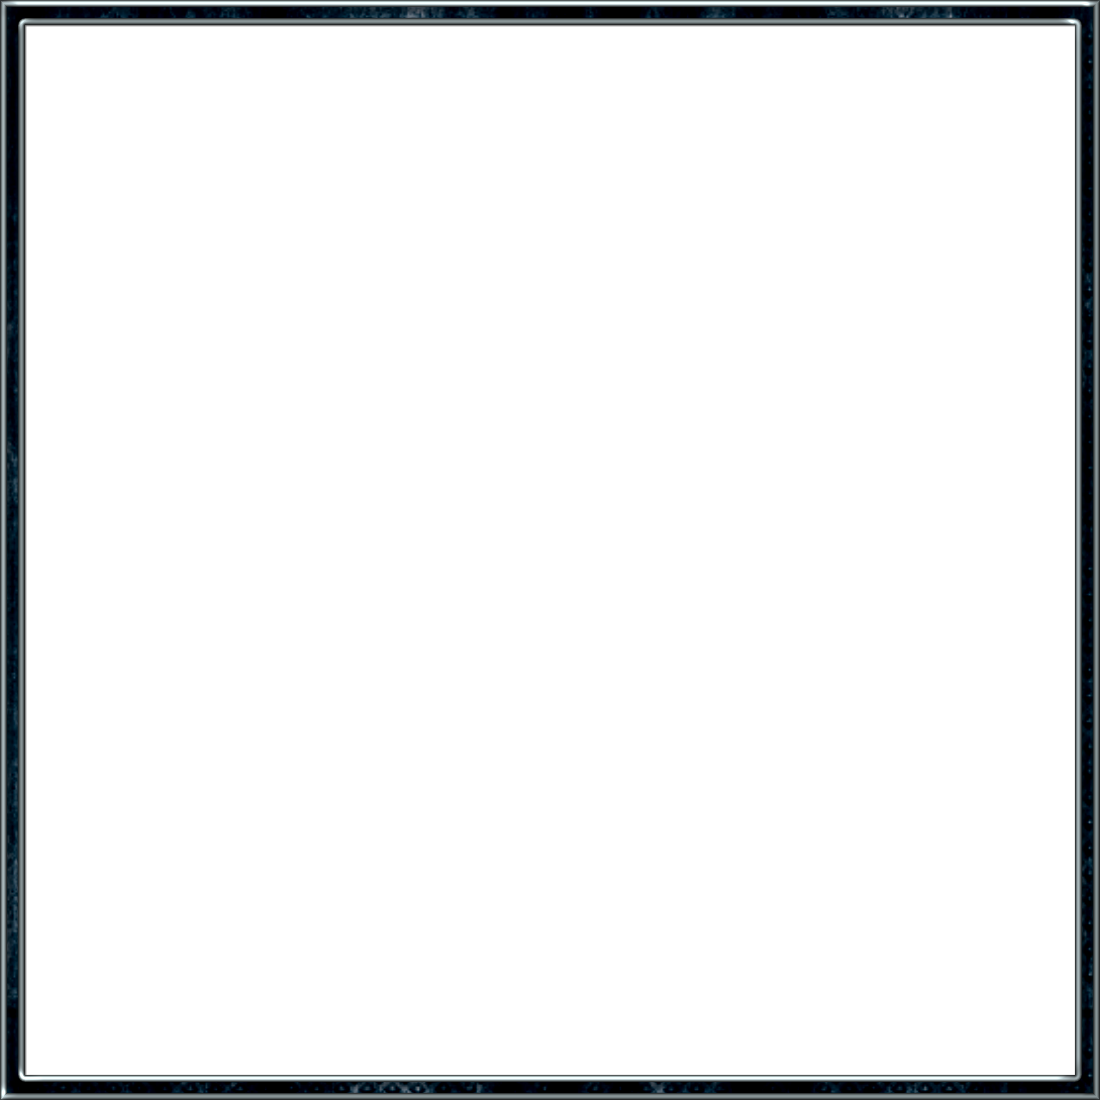 Rustic Clipart Square - Black Square Frame Png Transparent ...